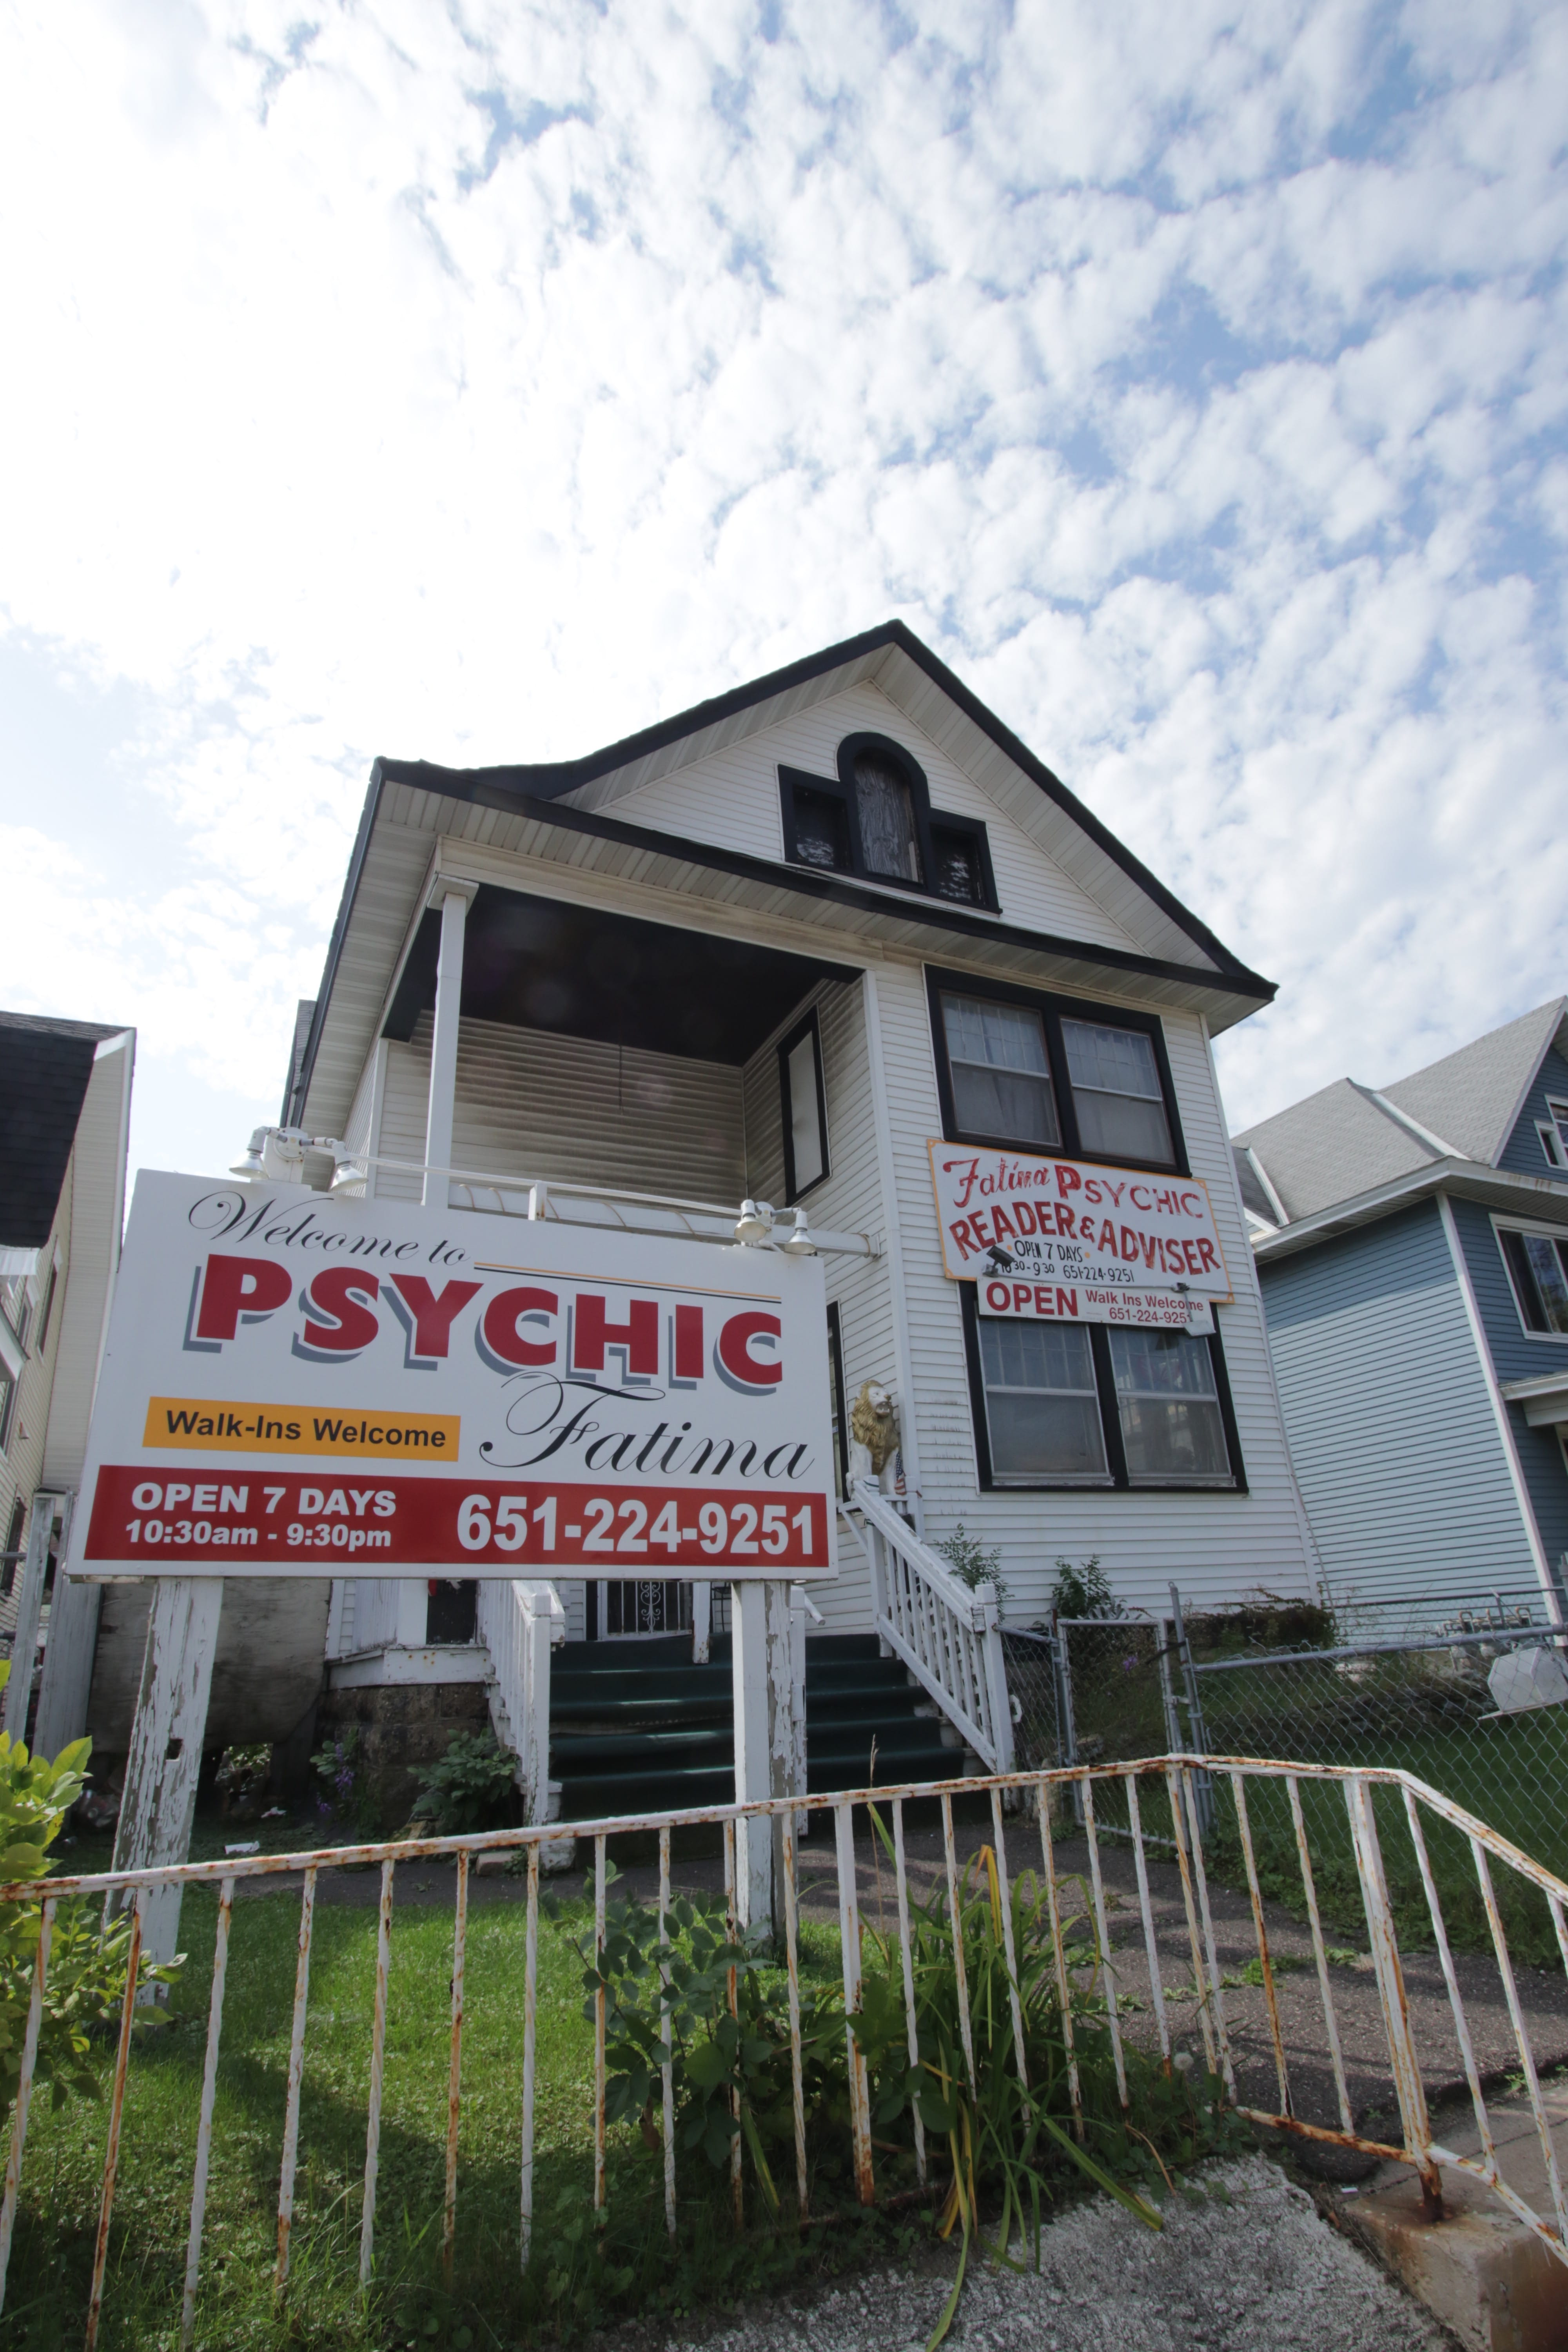 Fatima advertises prominently for her psychic services at 822 University.